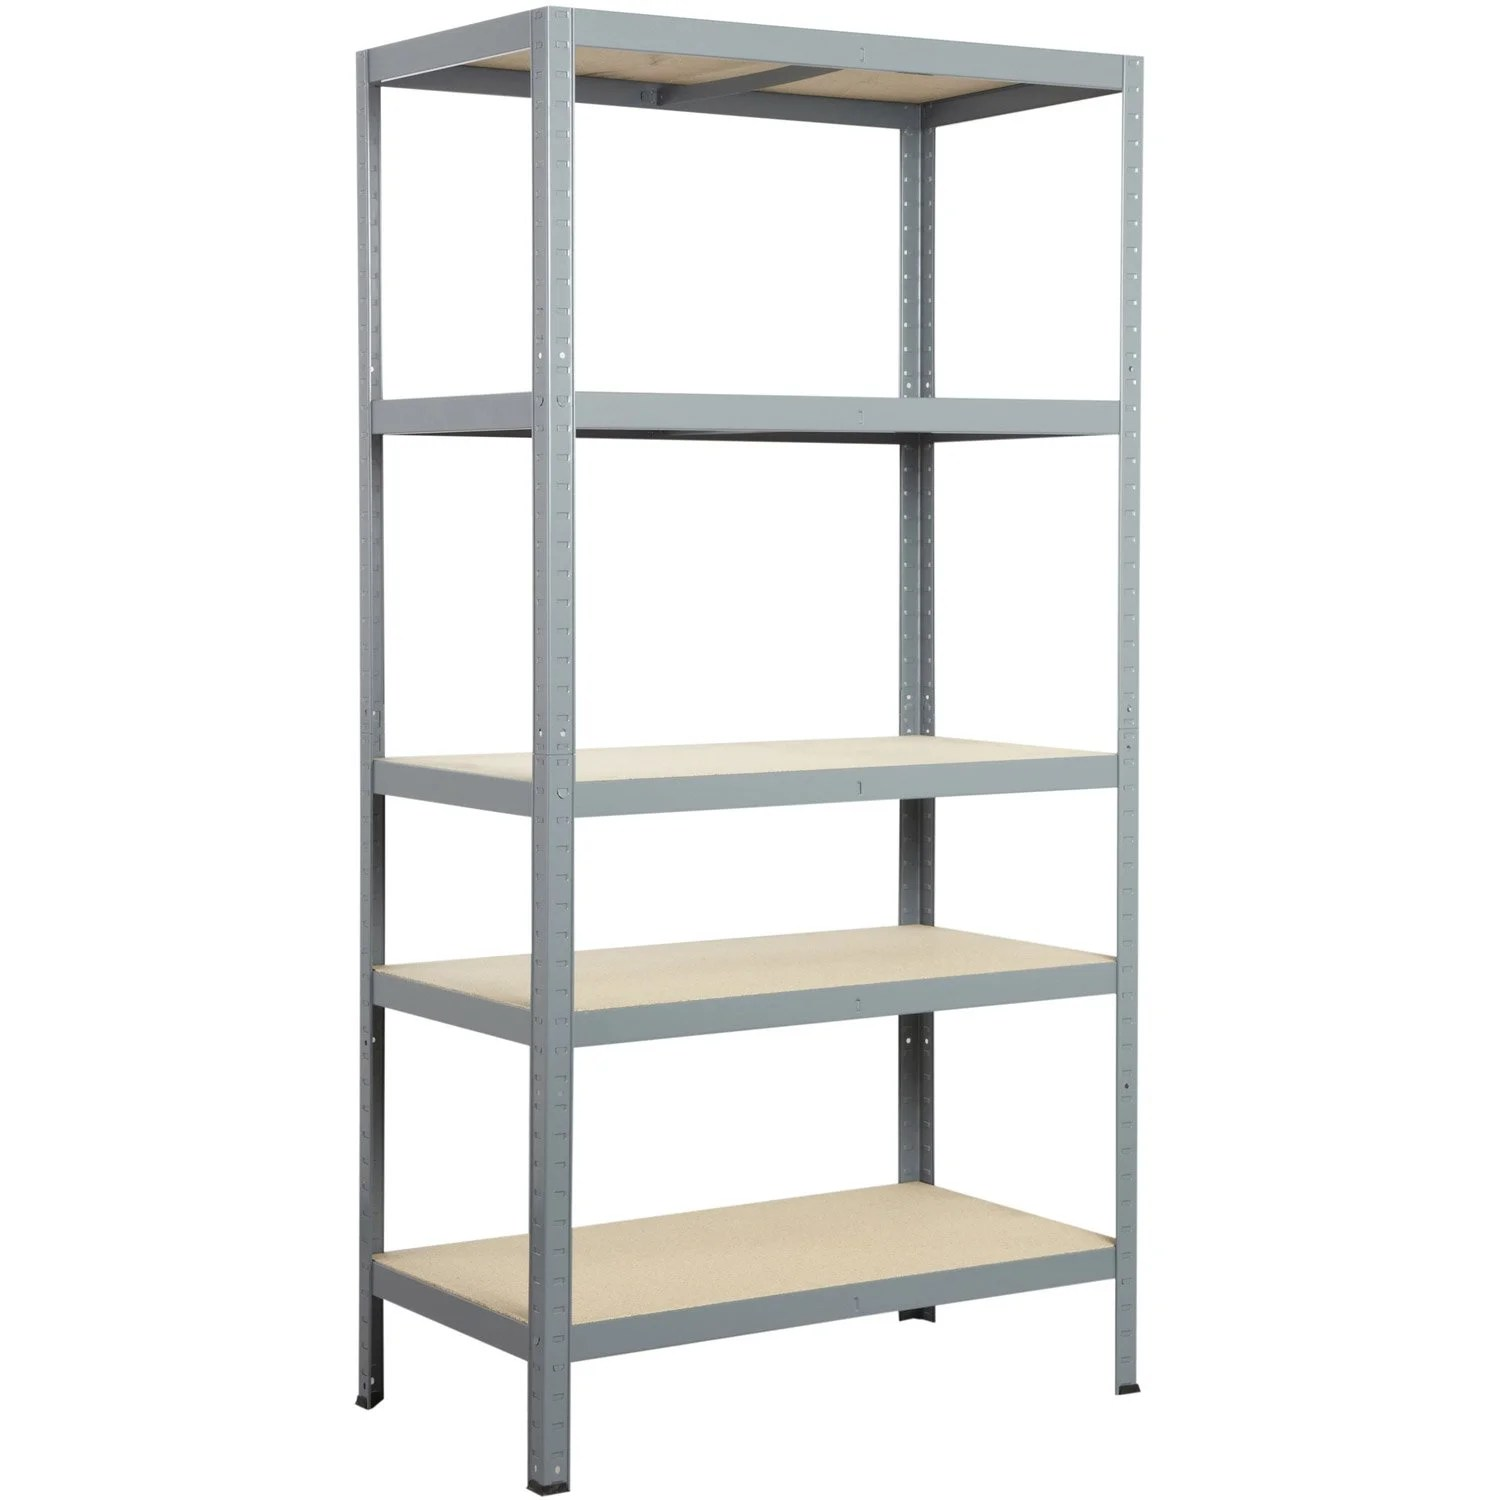 Etagere Epices Leroy Merlin Leroy Merlin Etagere Etag Re En R Sine 5 Tablettes Spaceo